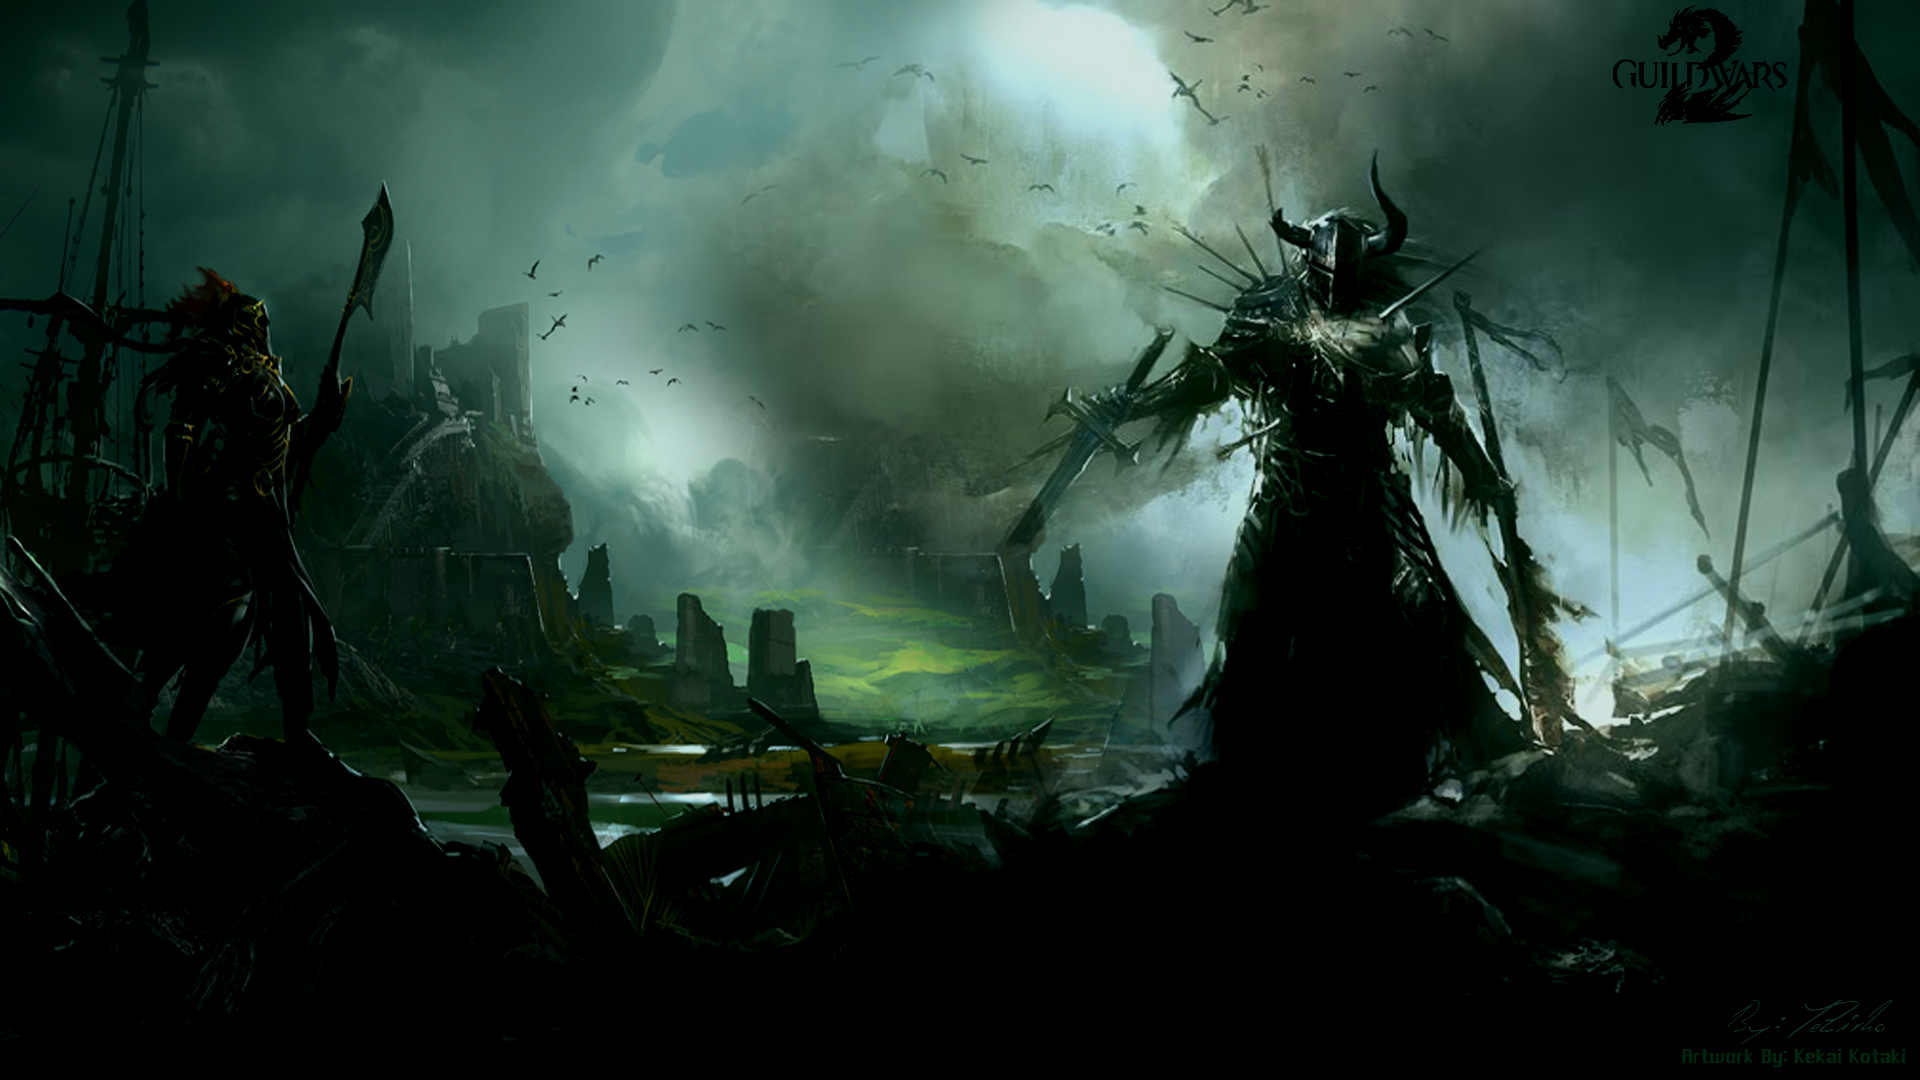 Stunning Epic Wallpapers and Desktop Backgrounds 1920x1080